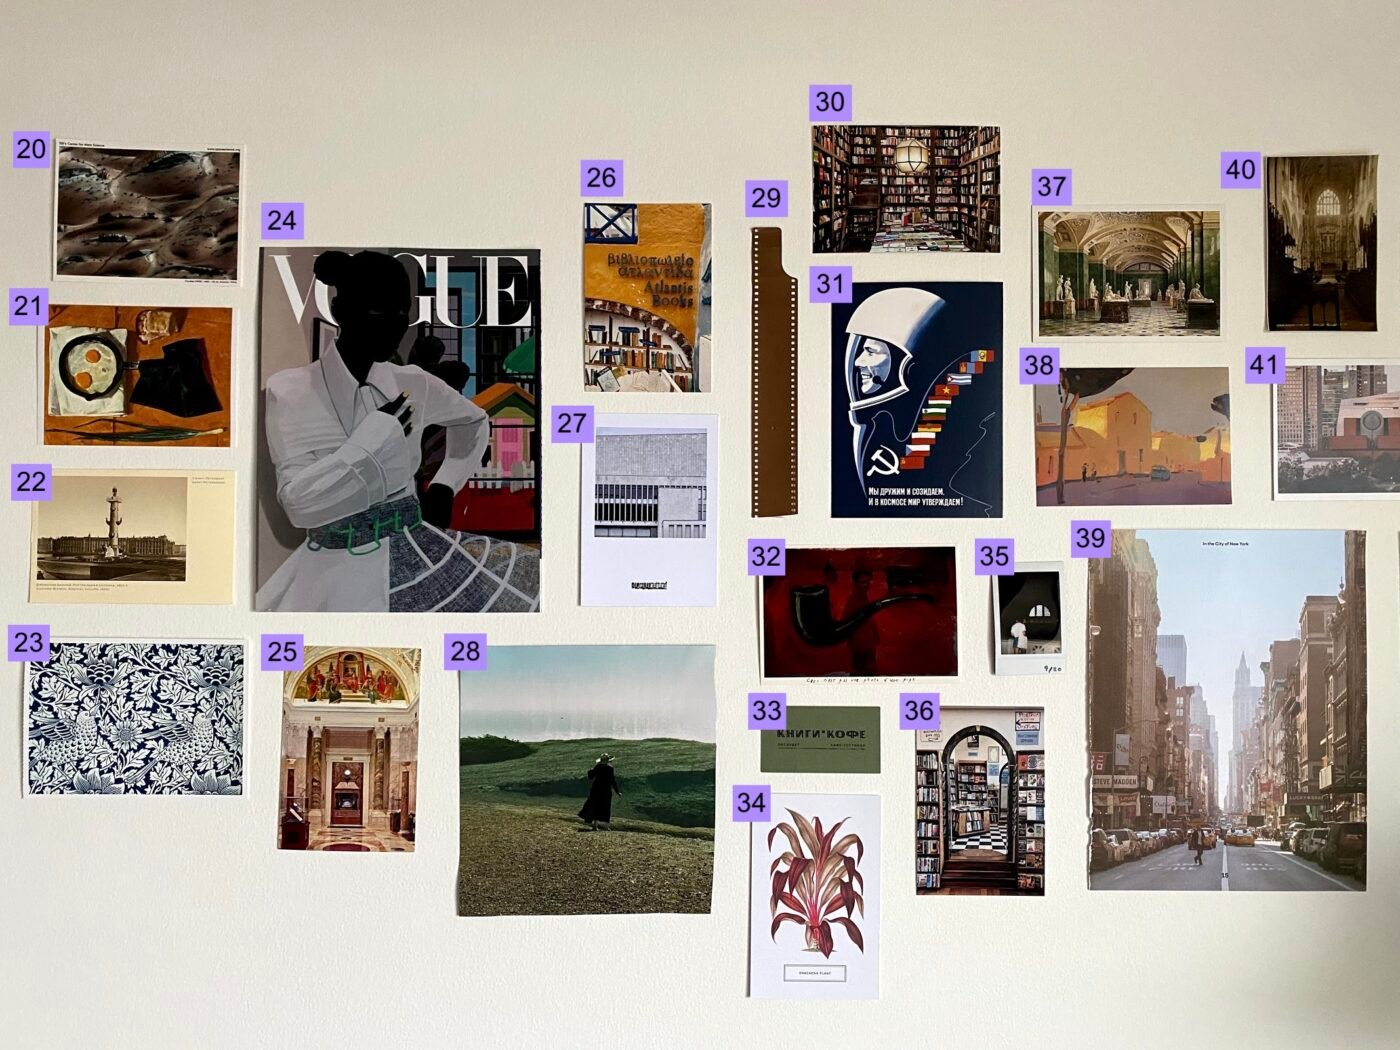 many photos on a wall, labeled with numbers